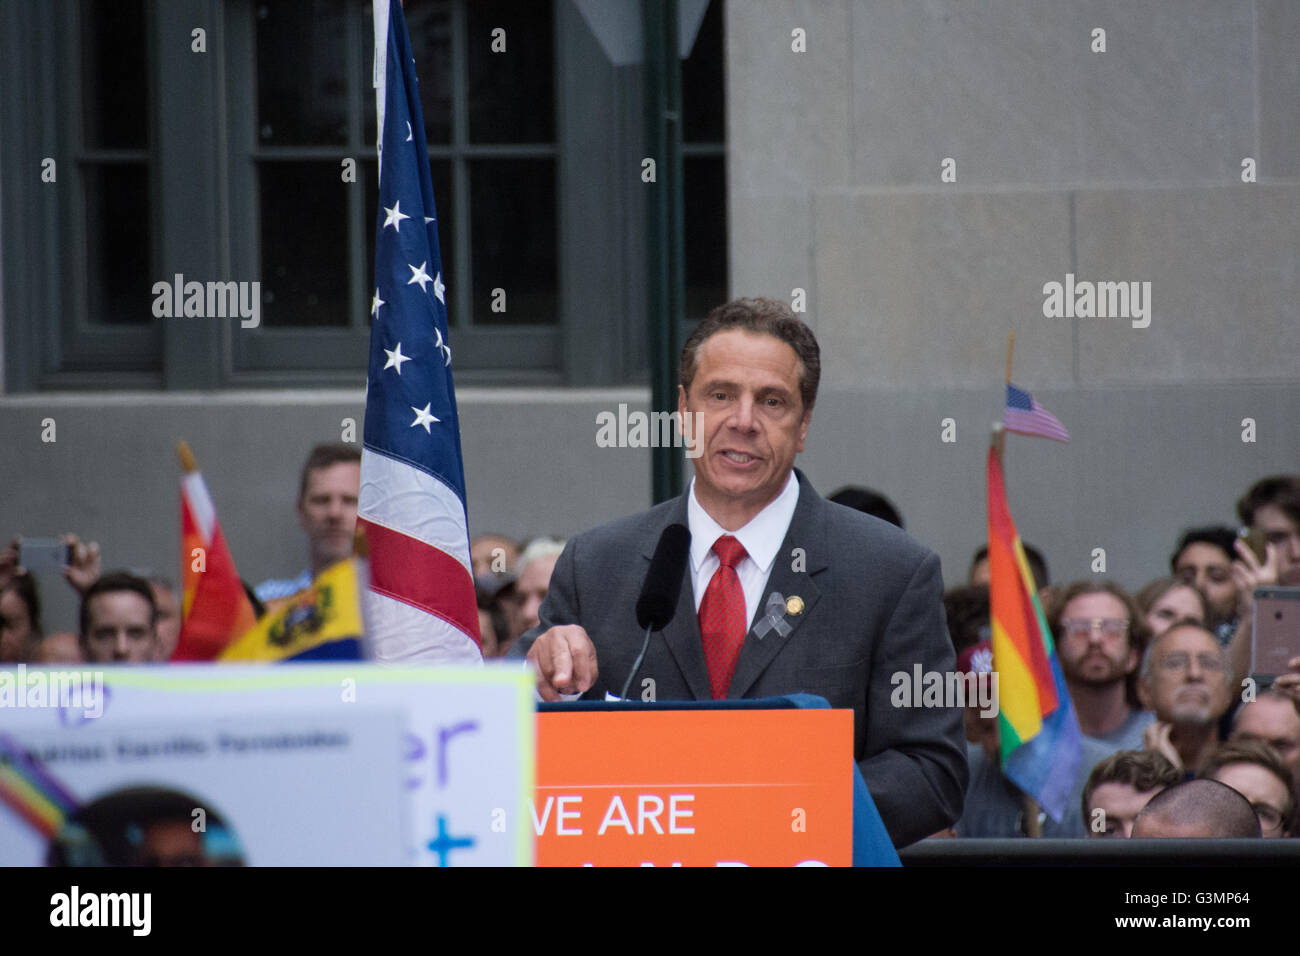 New York, USA. 13th June 2016. NY Governor Andrew Cuomo assures the LGBT community that New York stands with them. - Stock Image